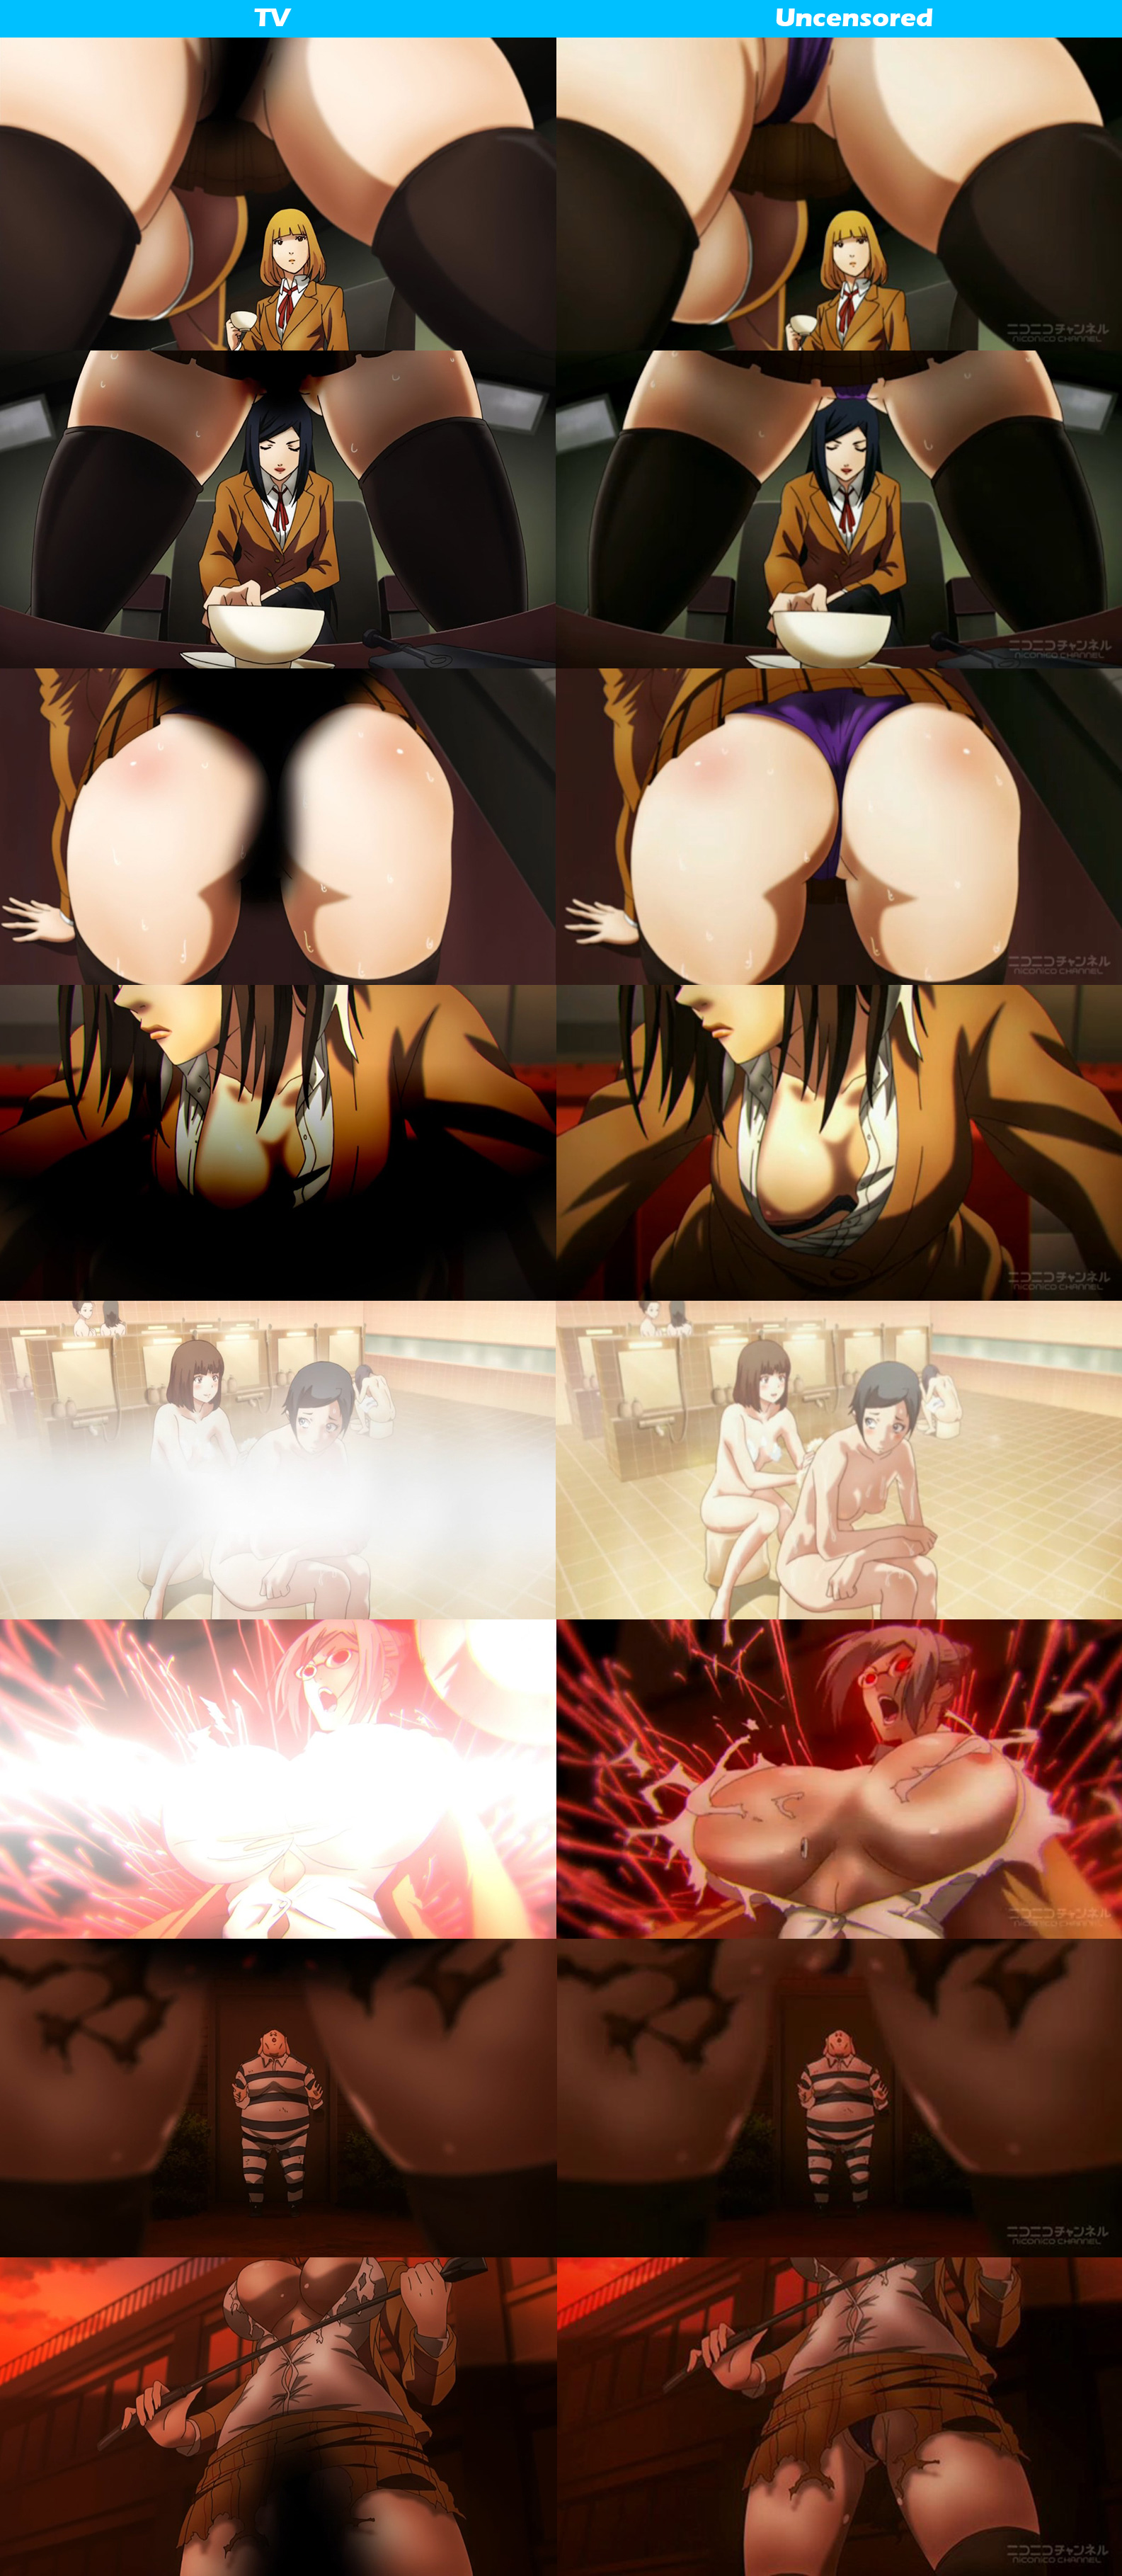 Prison-School-Anime-Censored-and-Uncensored-Comparison-5